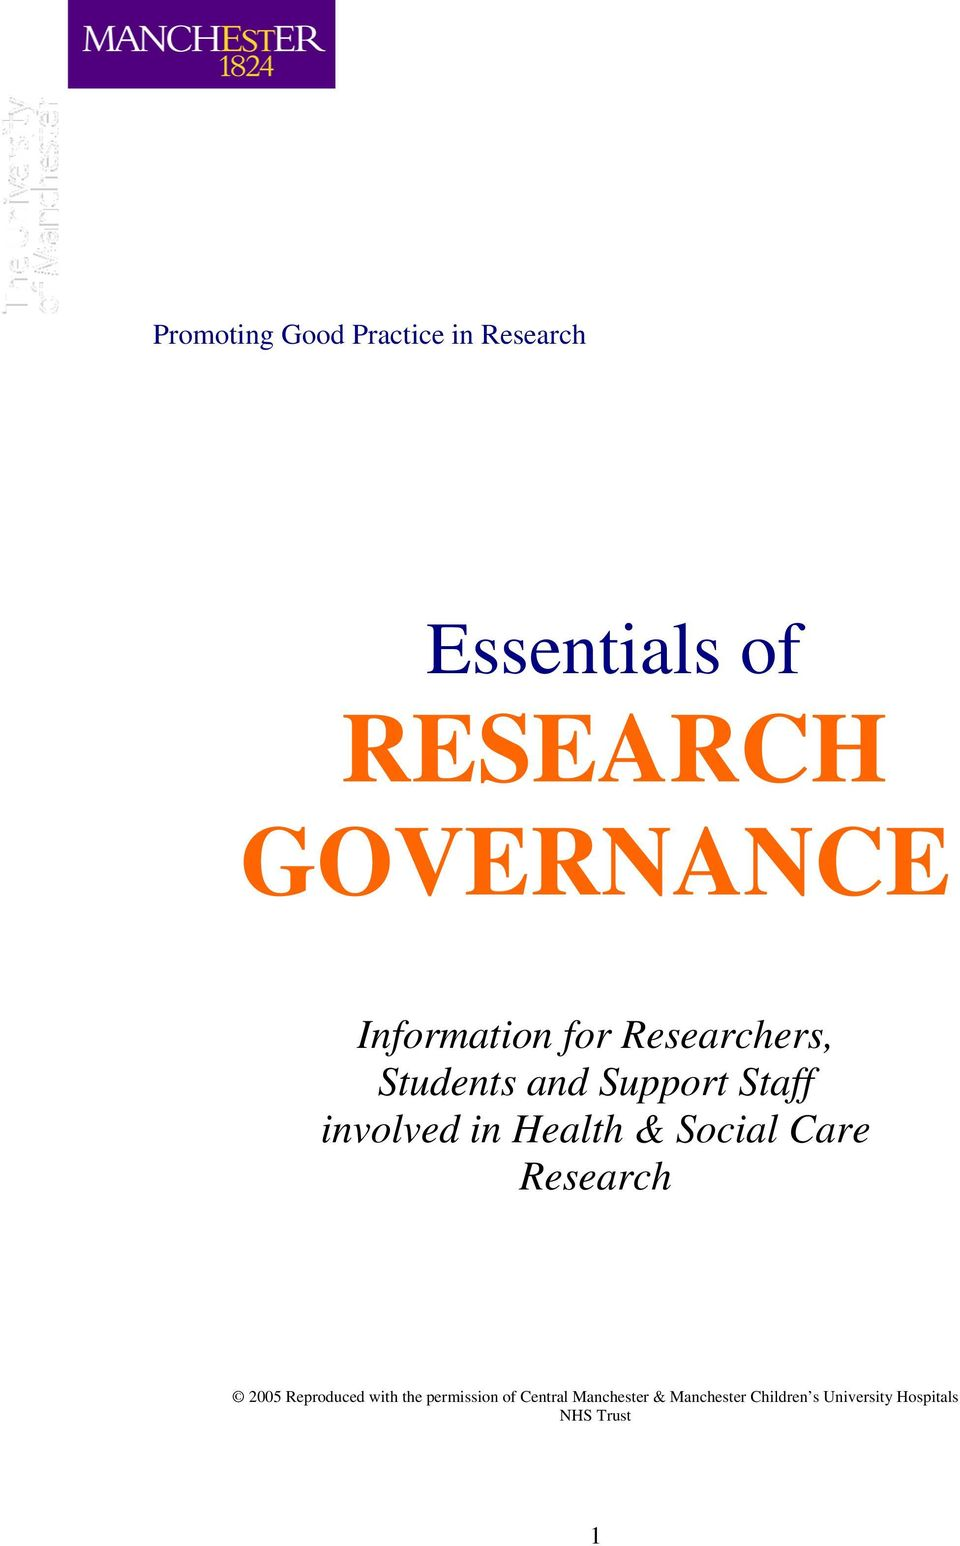 Health & Social Care Research 2005 Reproduced with the permission of